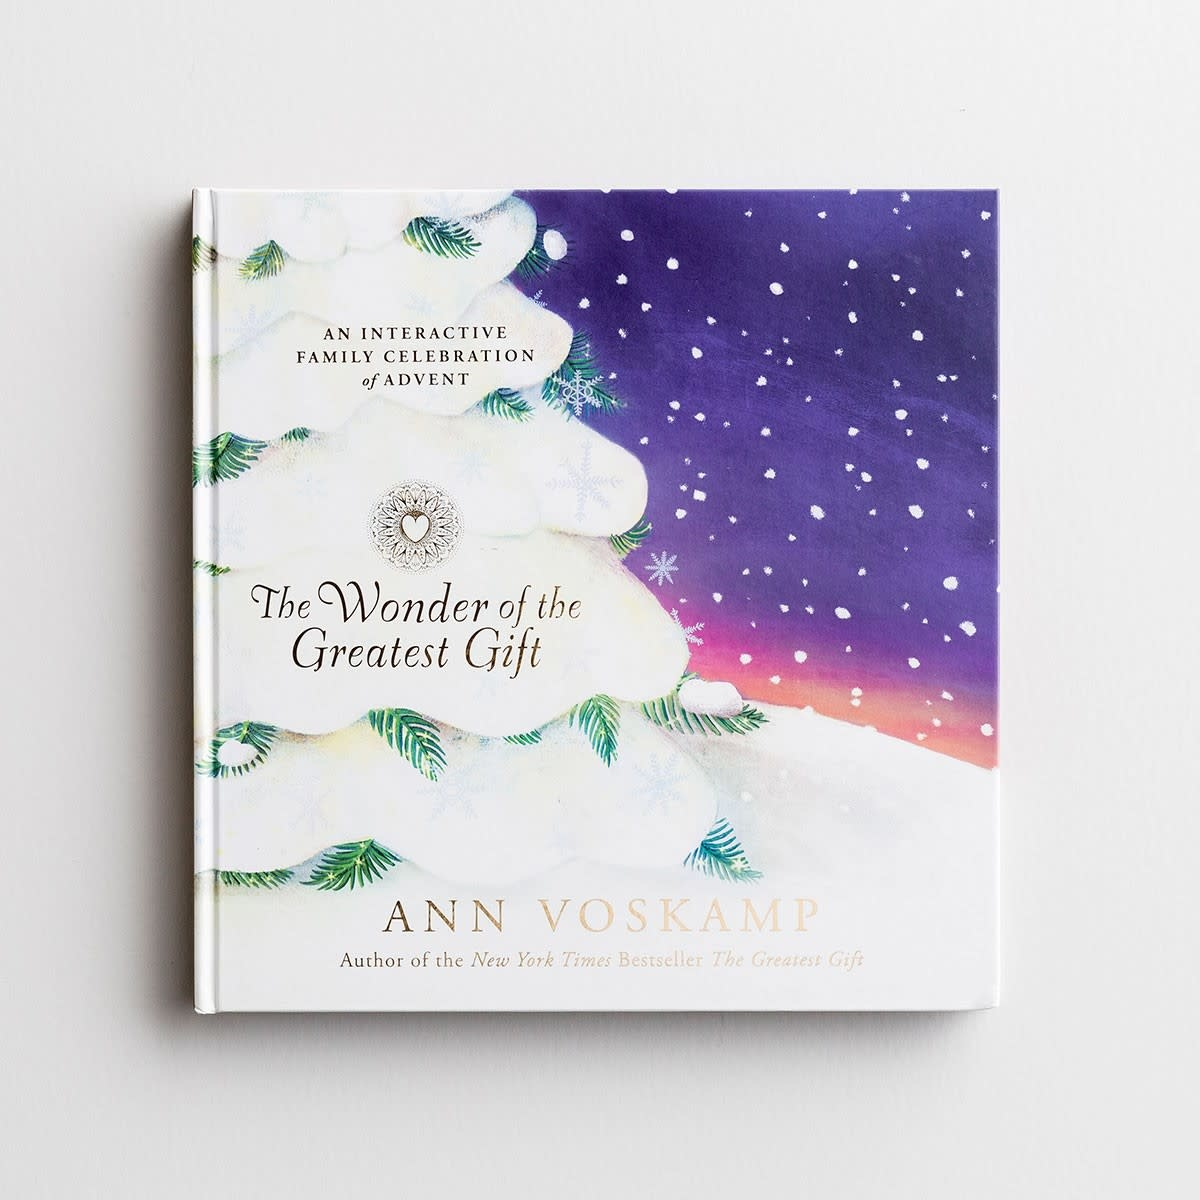 ANN VOSKAMP The Wonder of the Greatest Gift